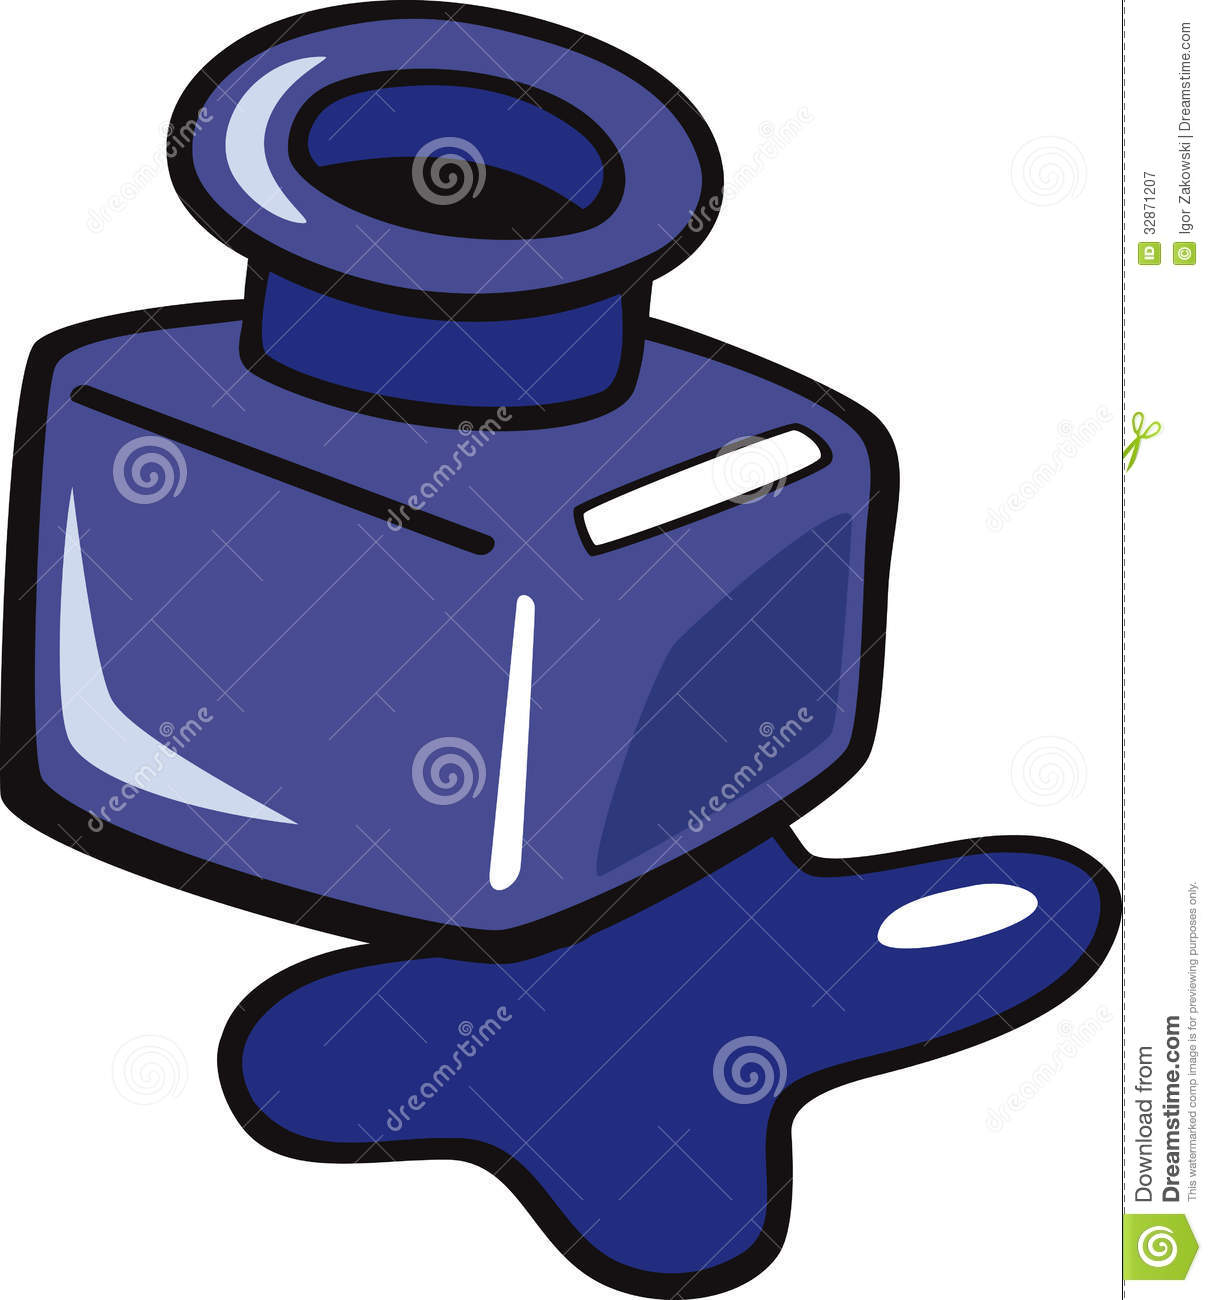 Ink Bottle Clipart - Clipart Suggest